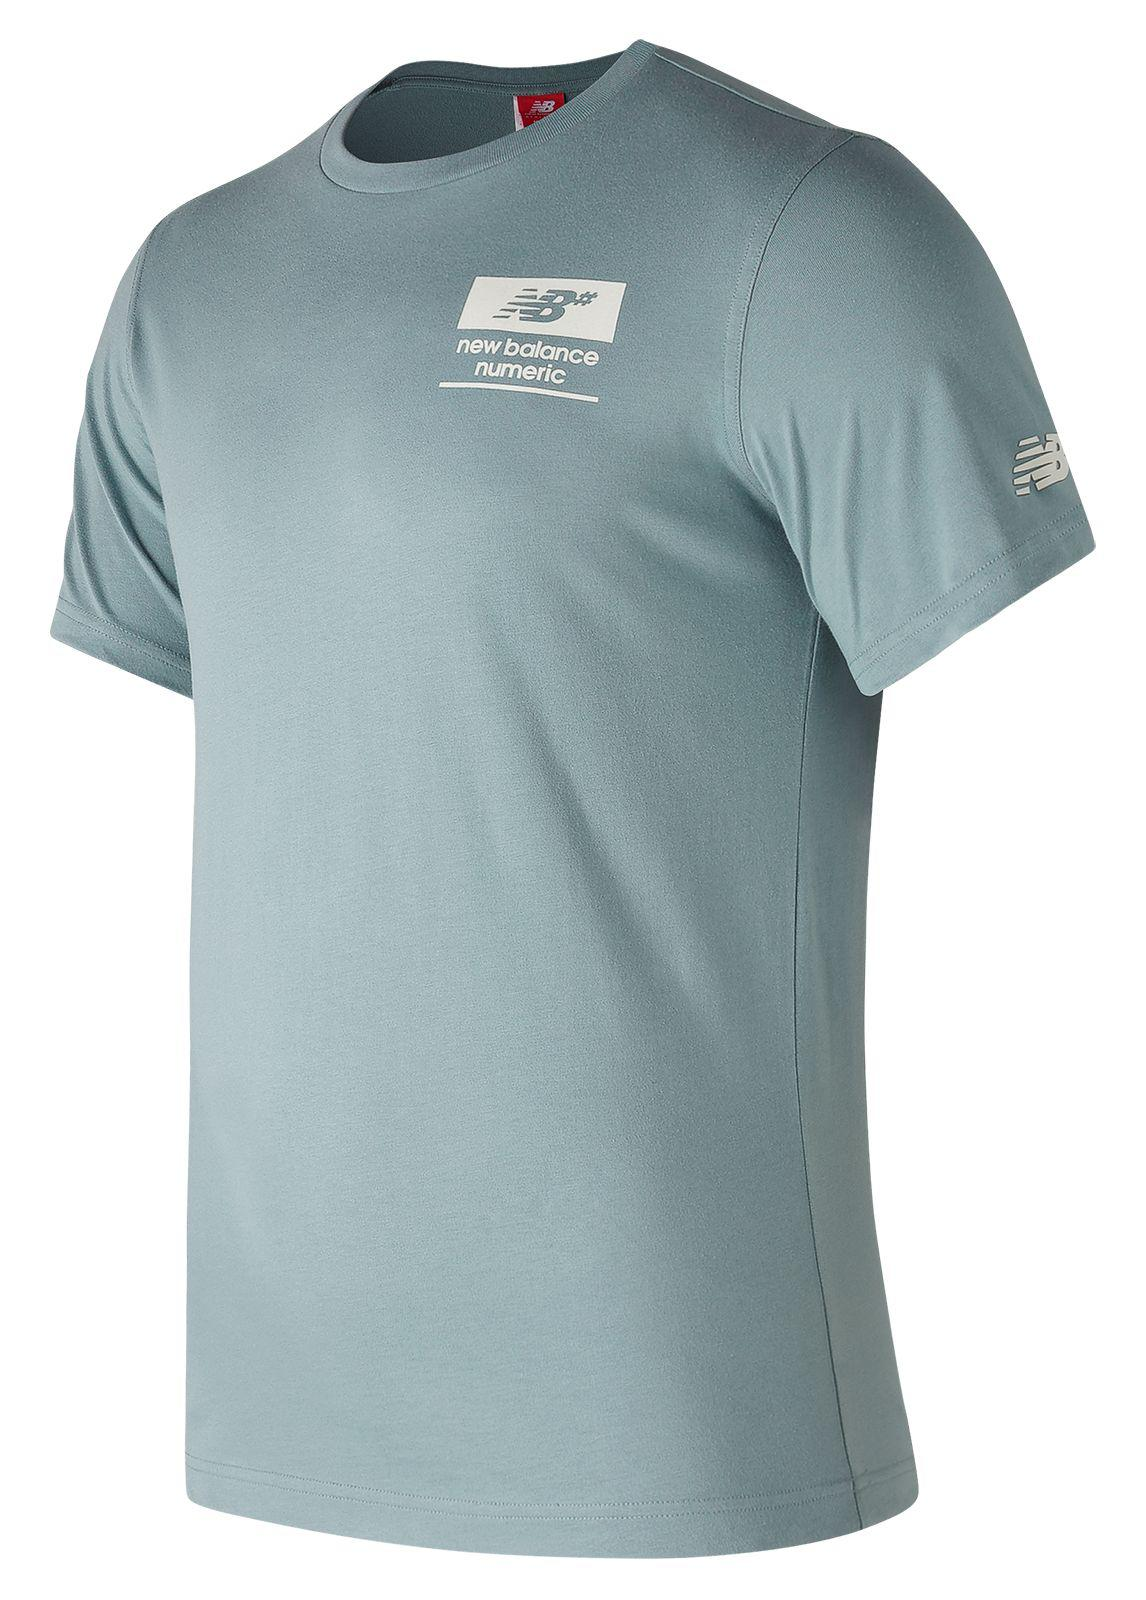 New Balance. Men's Blue Nb Numeric Stacked Tee